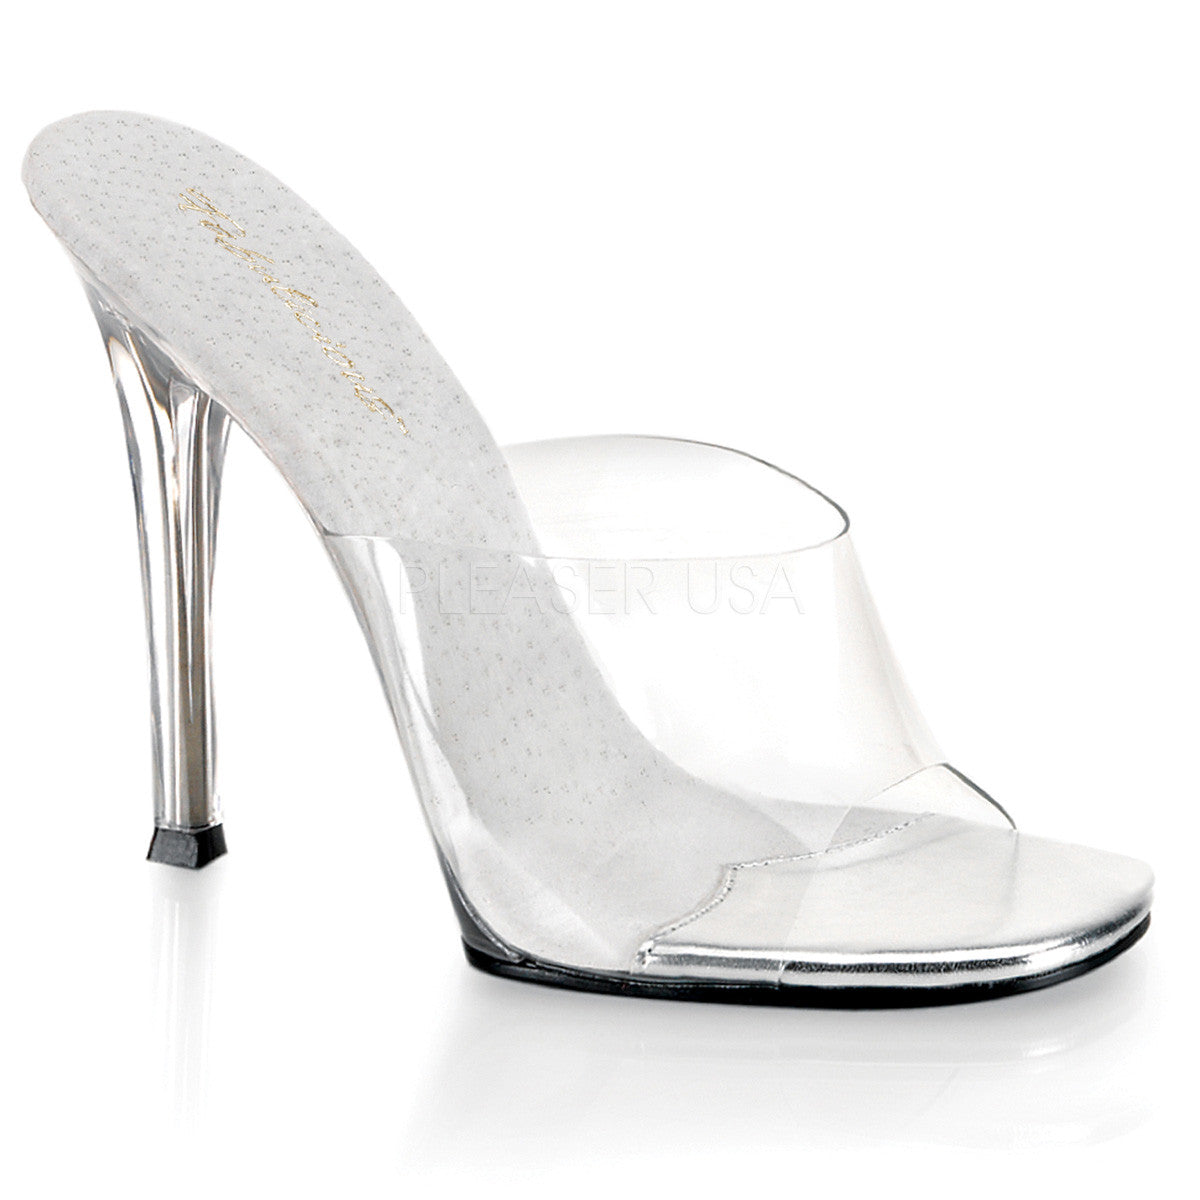 FABULICIOUS GALA-01 Clear Lucite Sandals - Shoecup.com